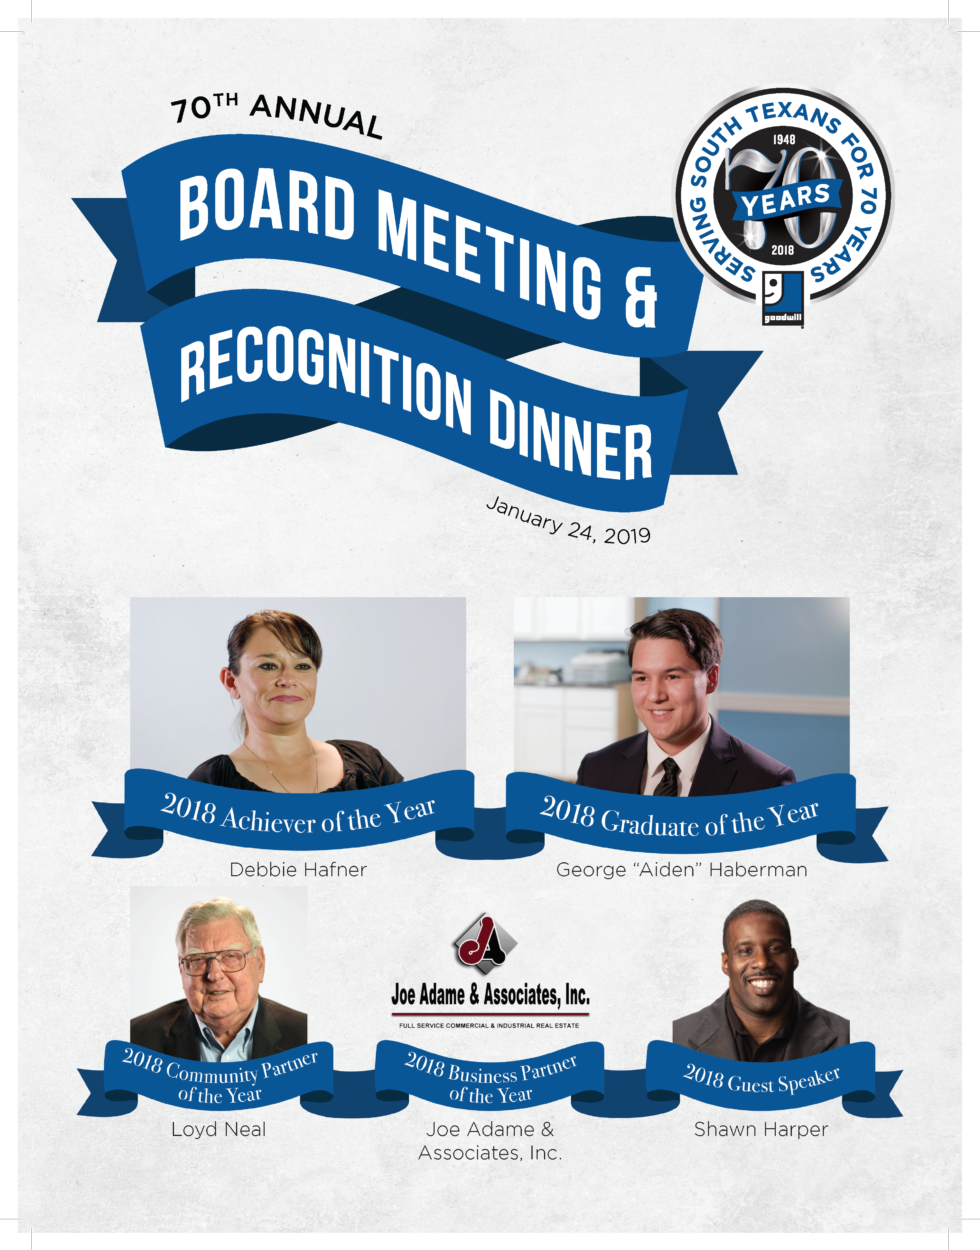 Goodwill South Texas Board Meeting and Recognition Dinner January 24, 2019